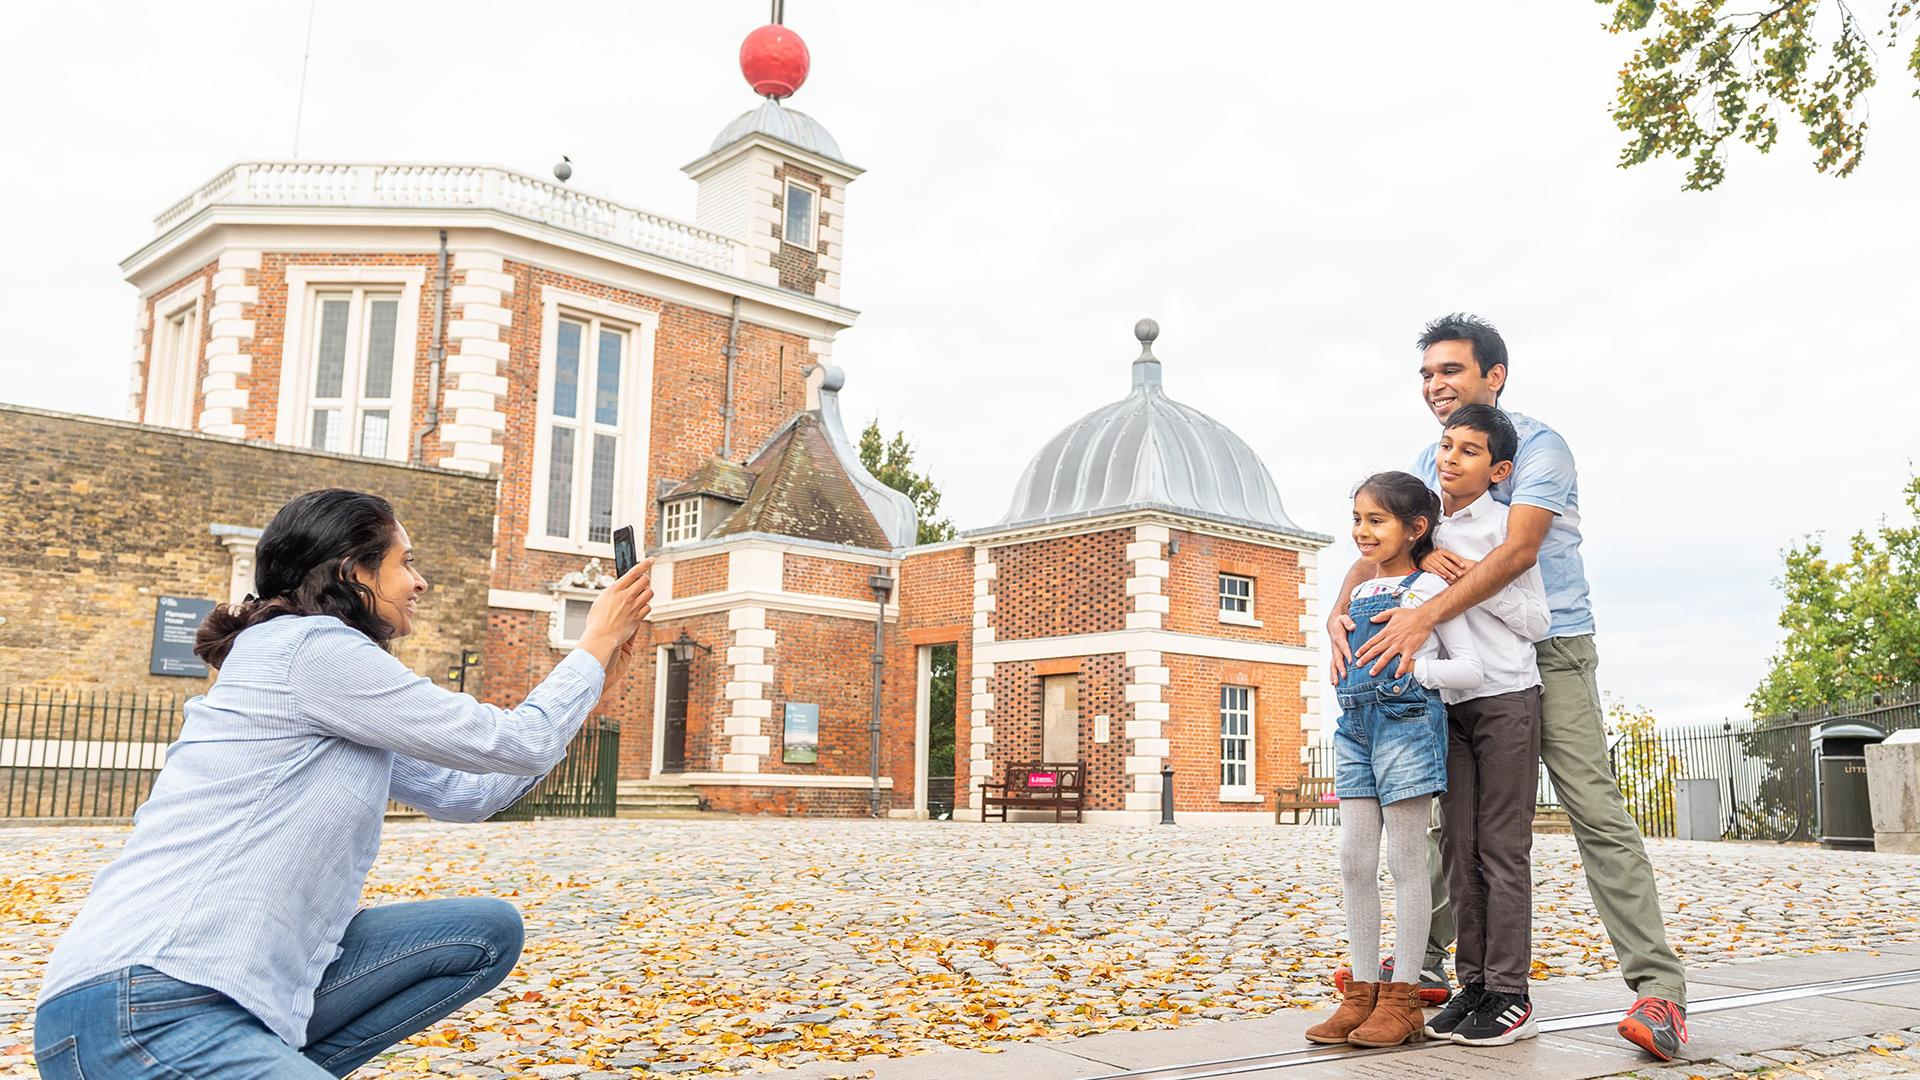 A family on the Meridian Line at the Royal Observatory in Greenwich.